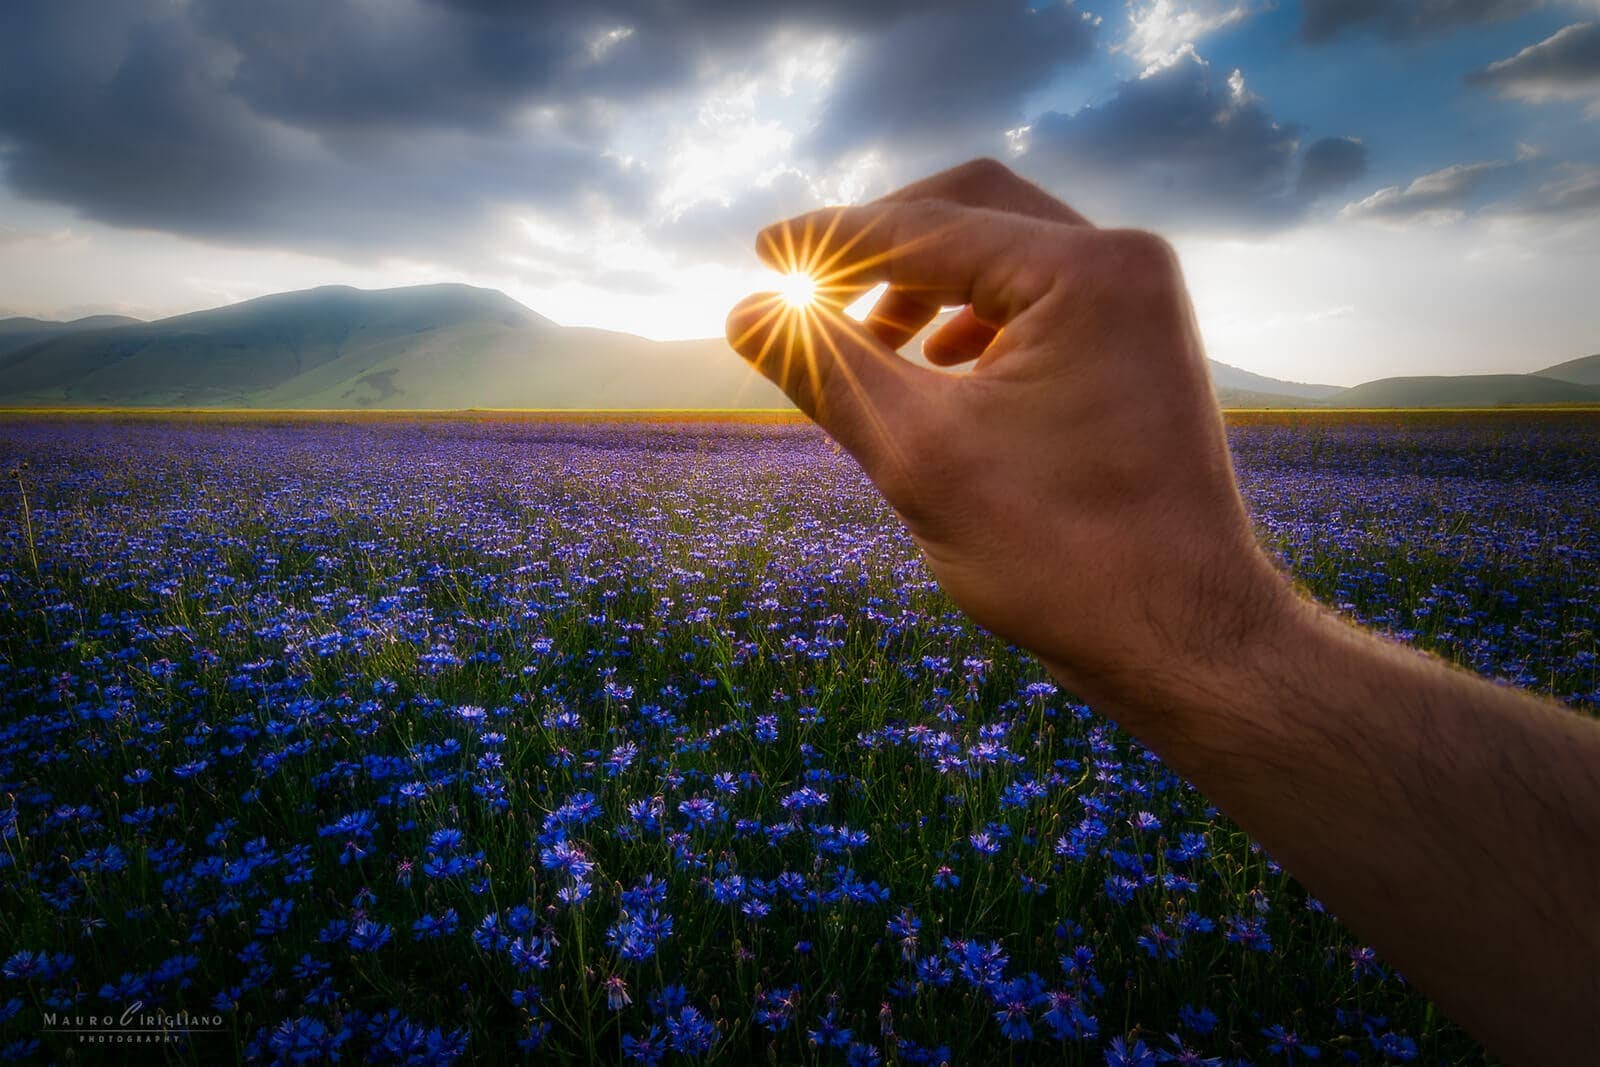 cornflowers field with hand touching the sun